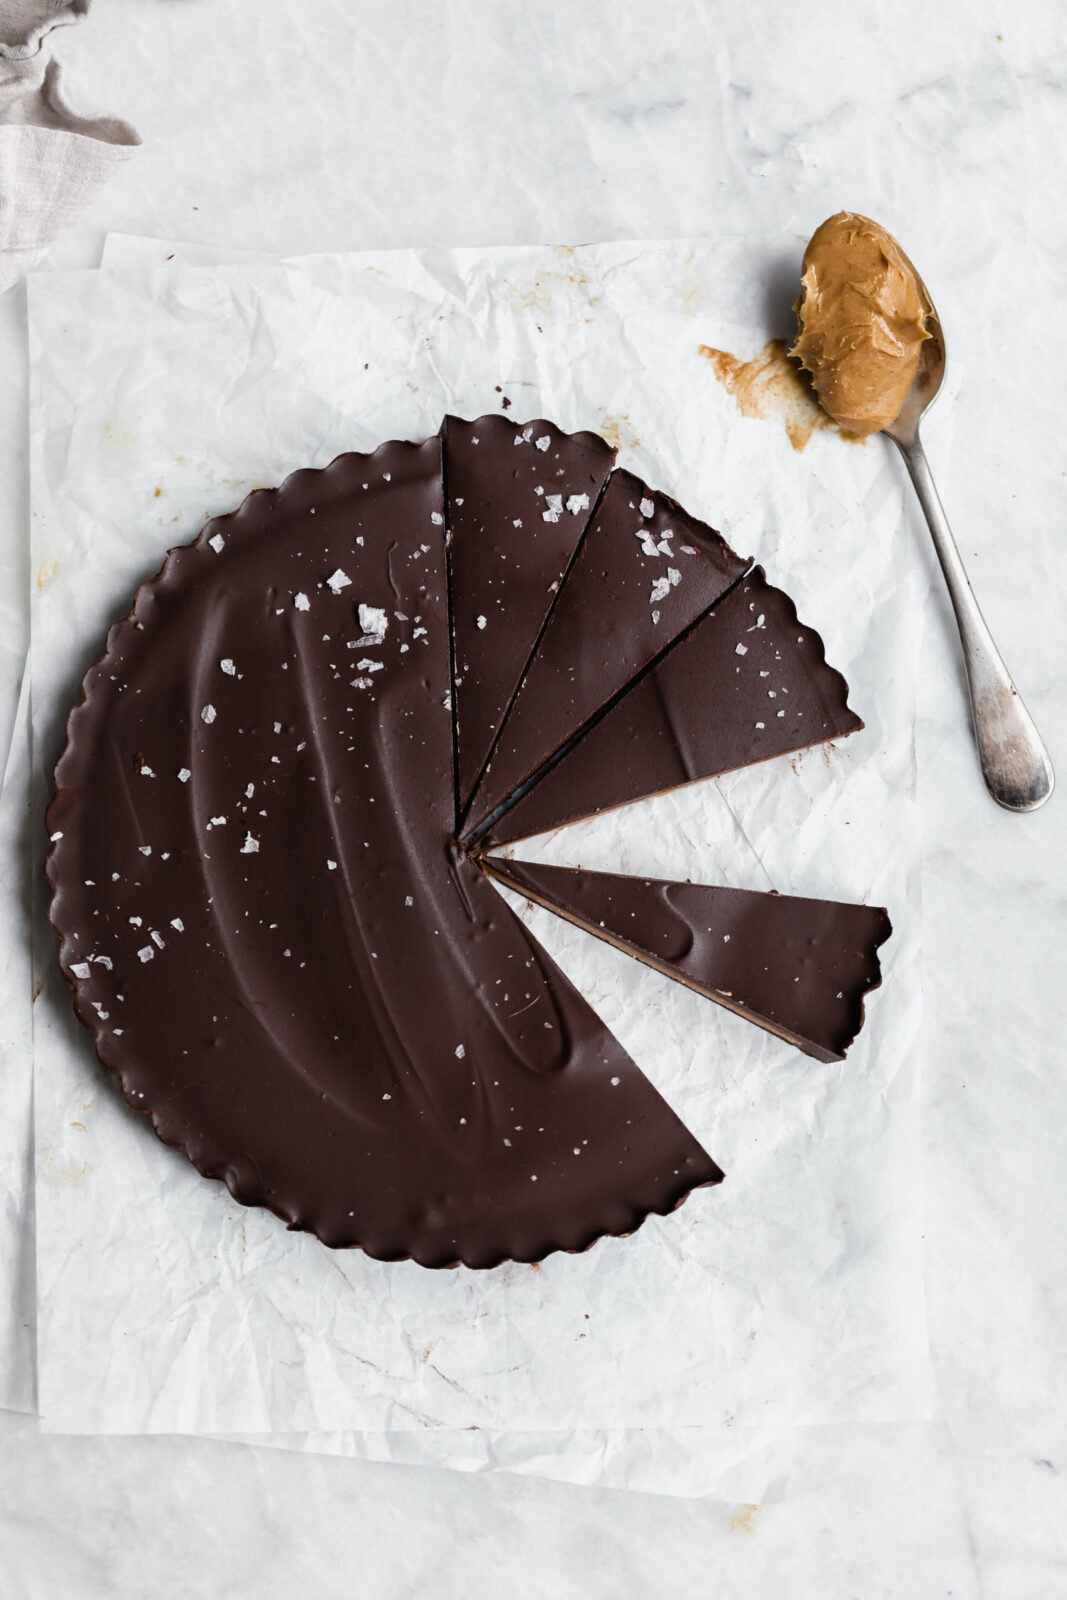 giant reeses peanut butter cup